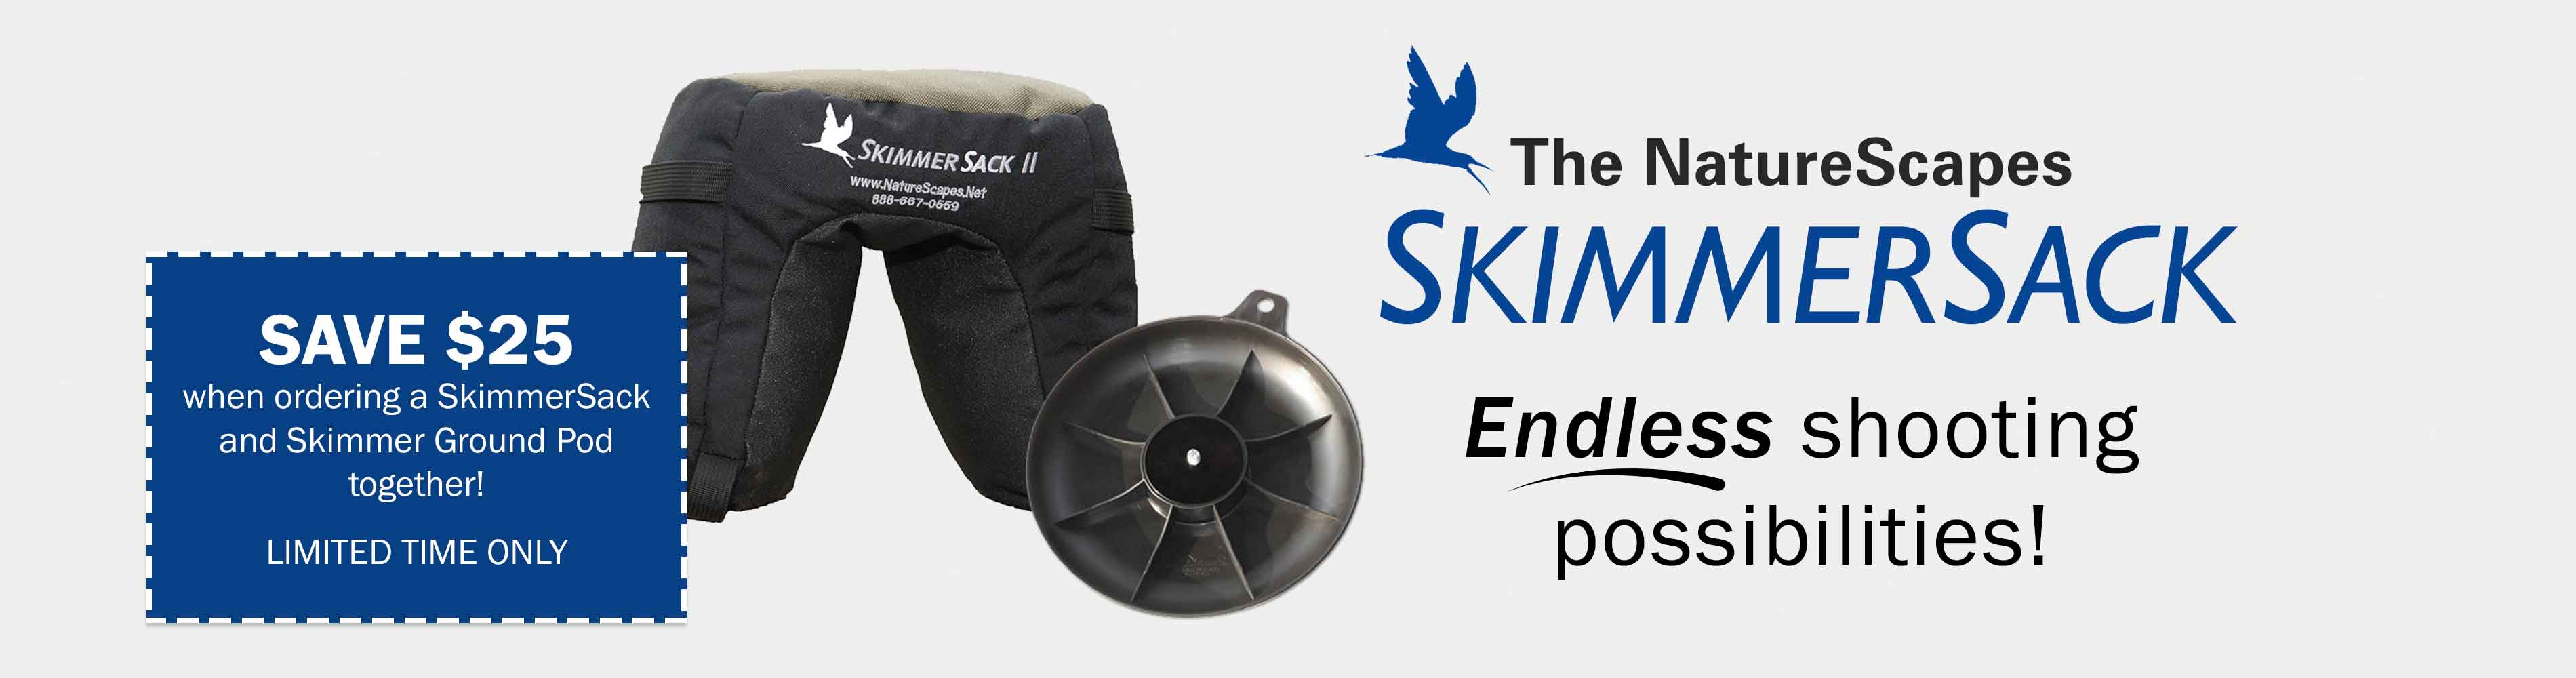 Save $25 when ordering a SkimmerSack and Skimmer Ground Pod together! Limited time only.